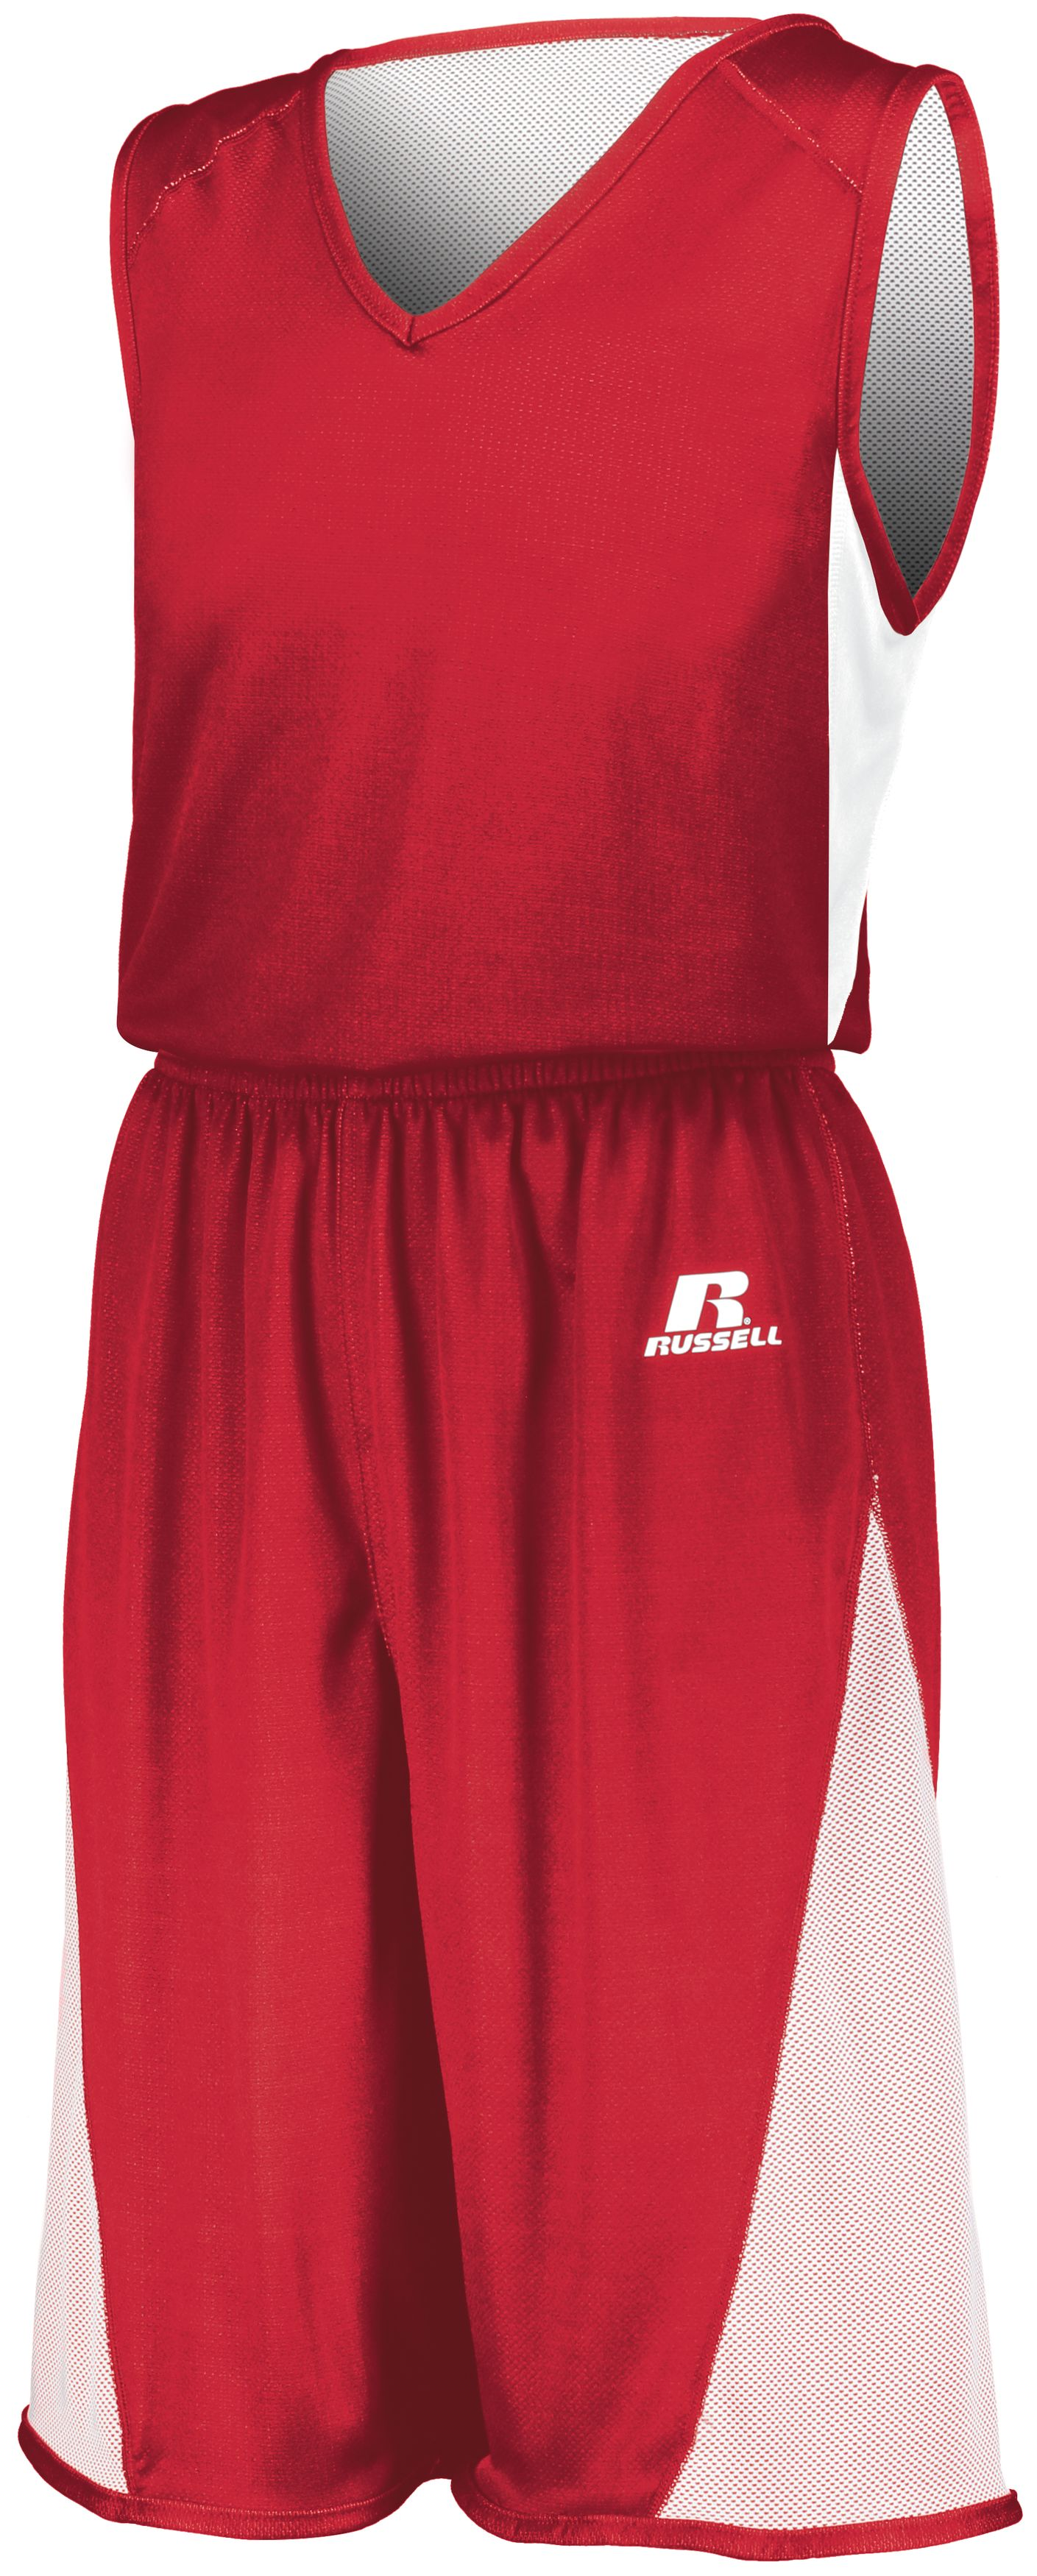 Undivided Single Ply Reversible Jersey - TRUE RED/WHITE